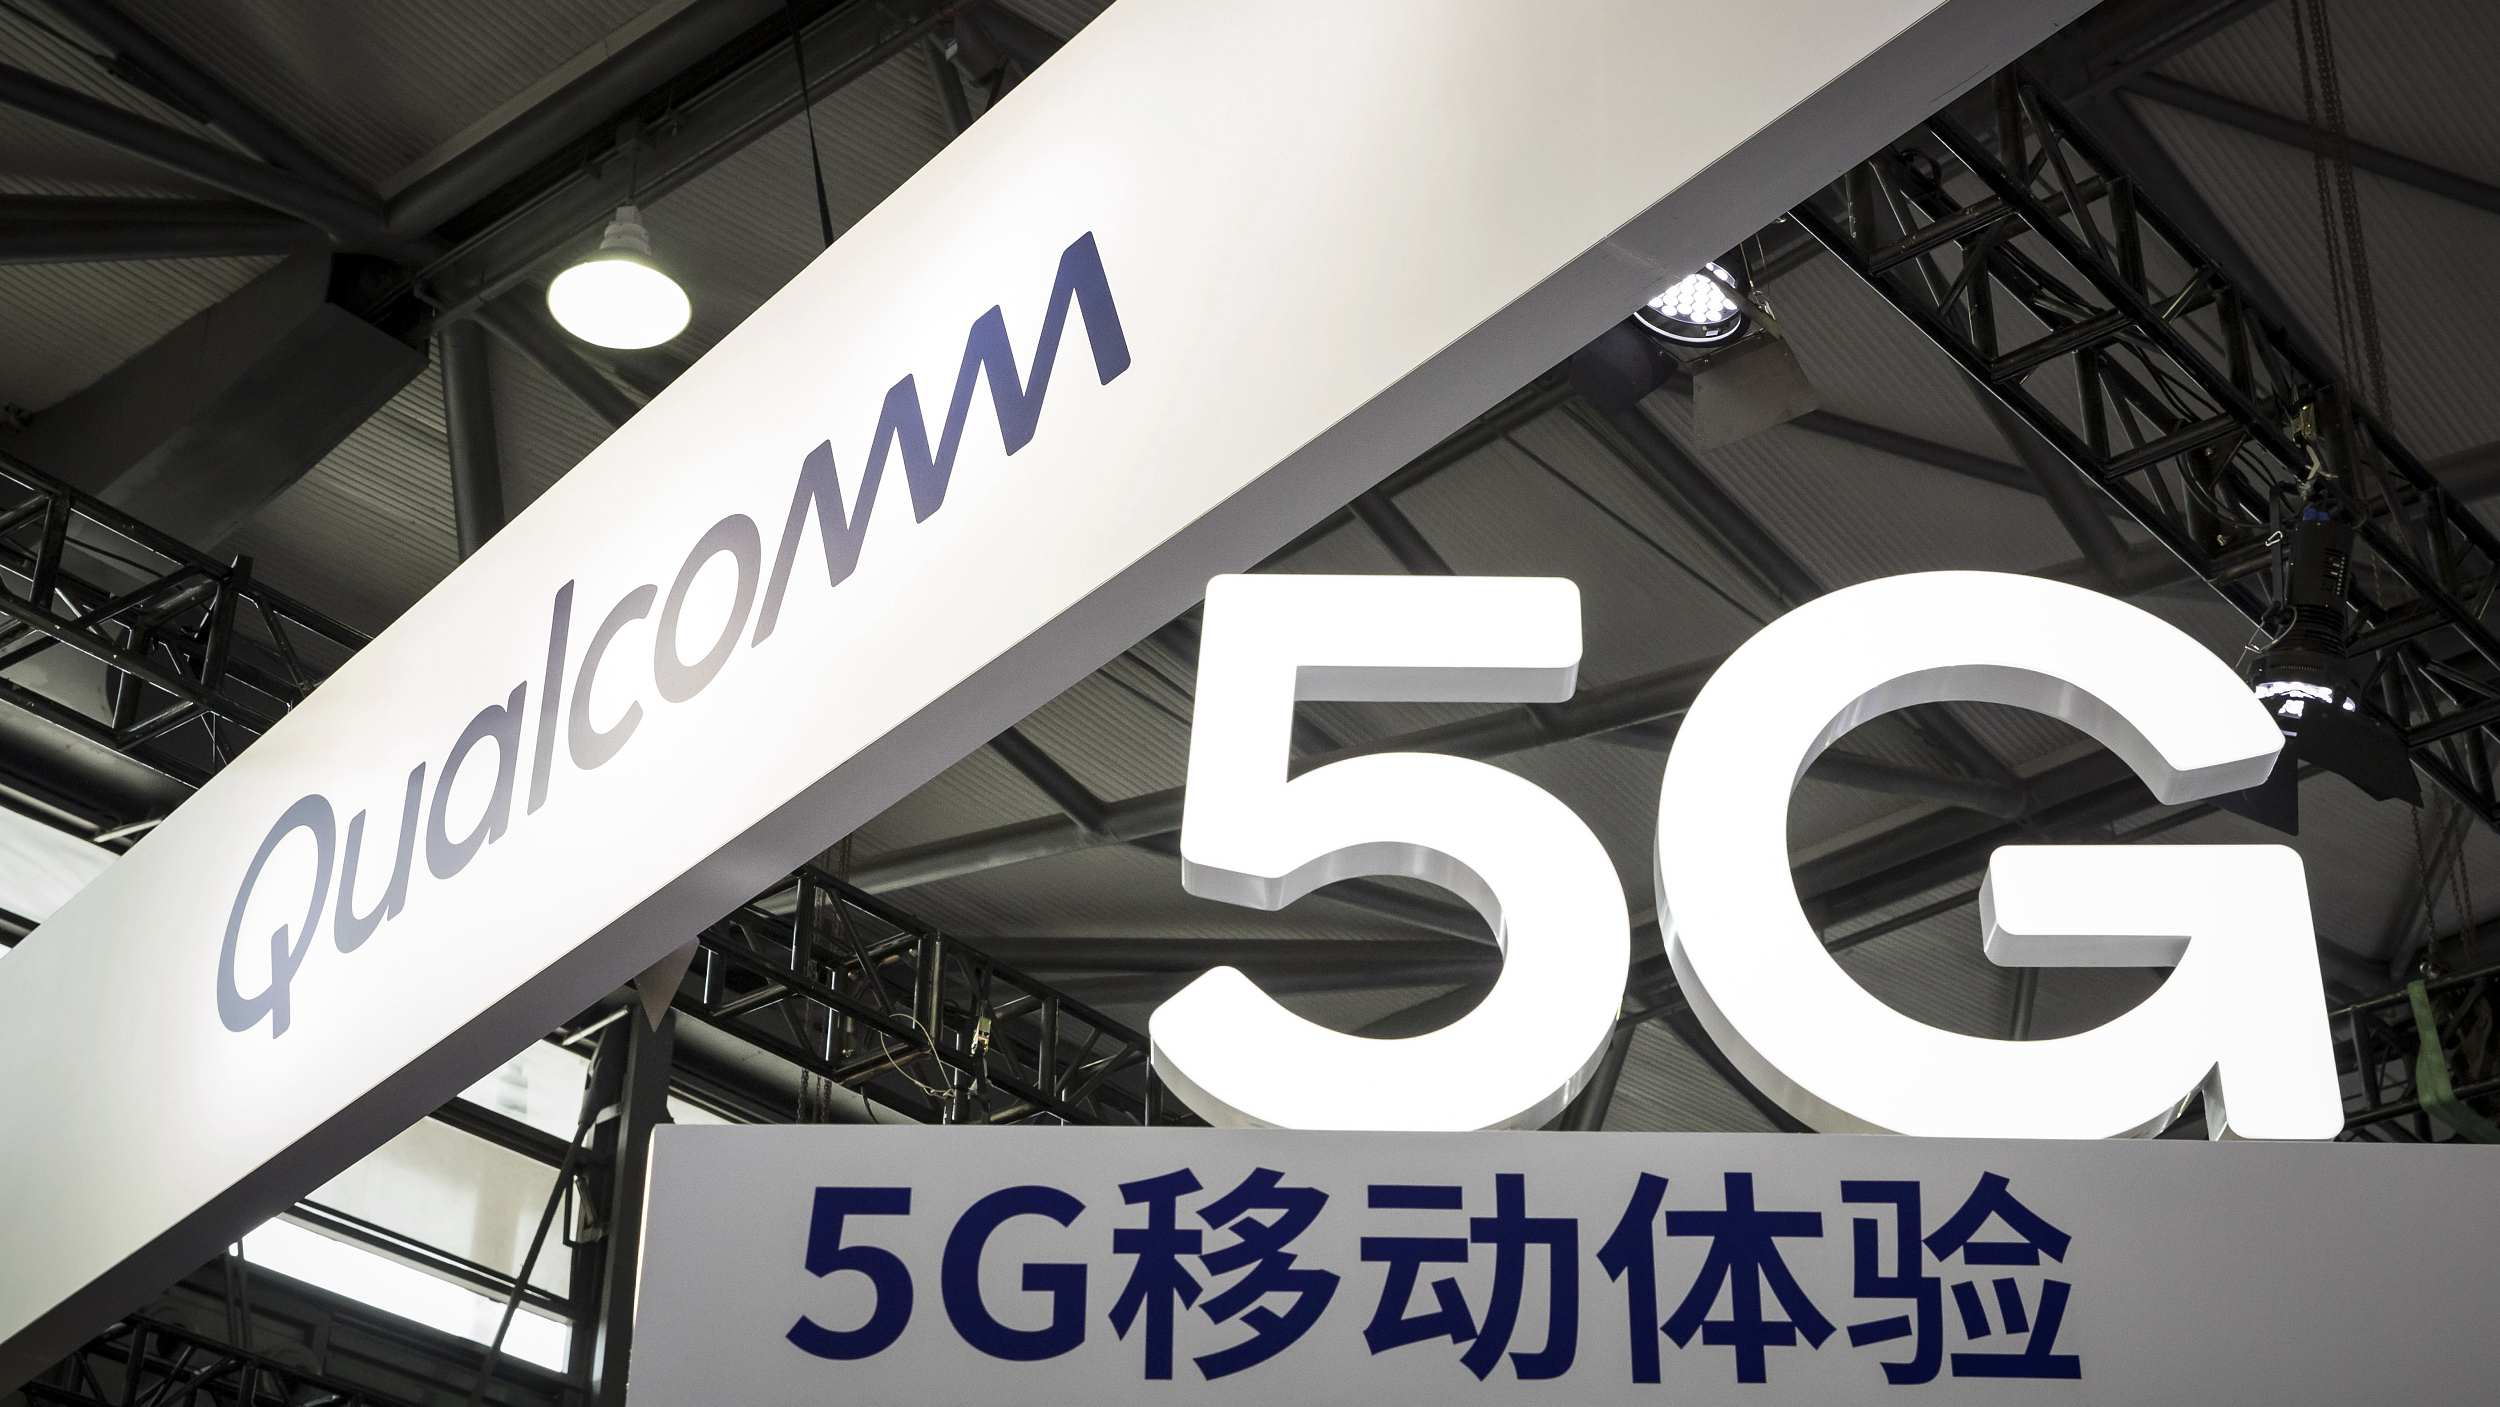 China remains global 5G leader despite COVID-19: report